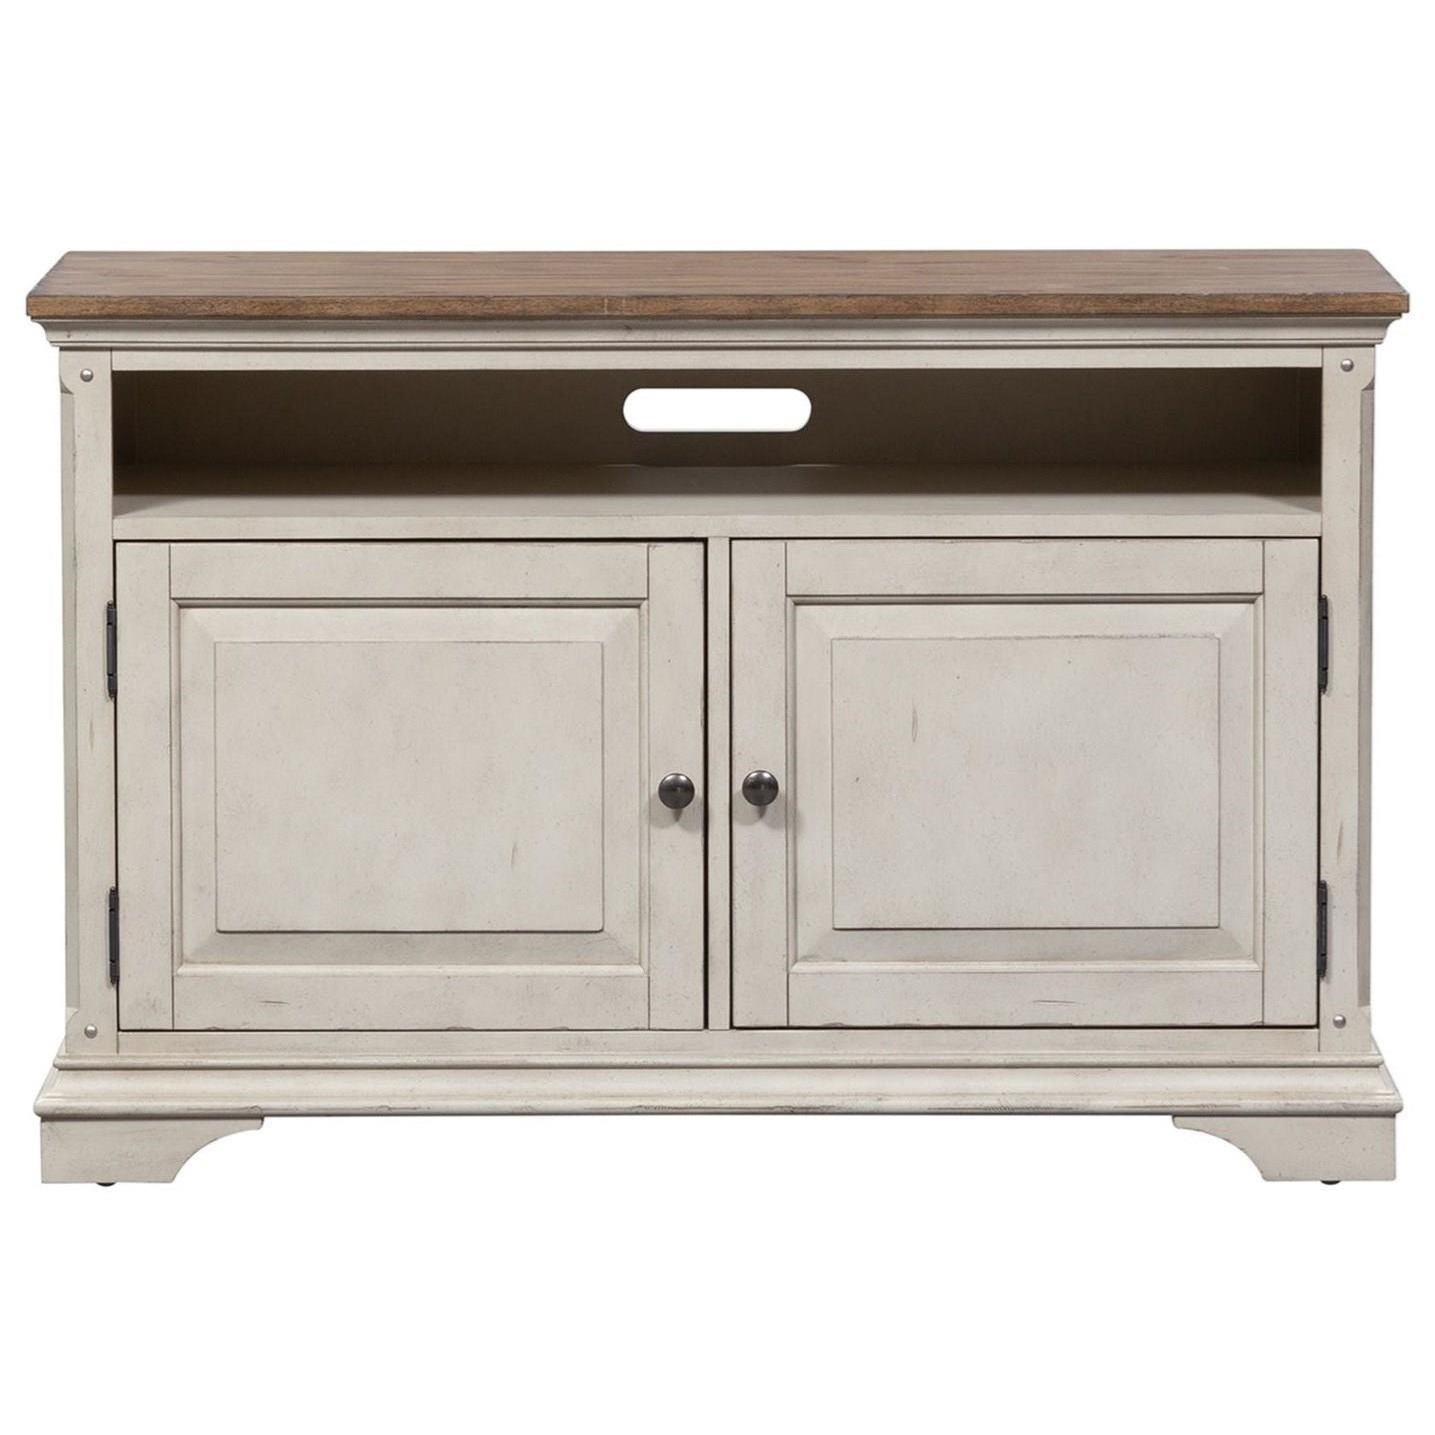 Farmhouse 46 Inch TV Console with 2 Doors